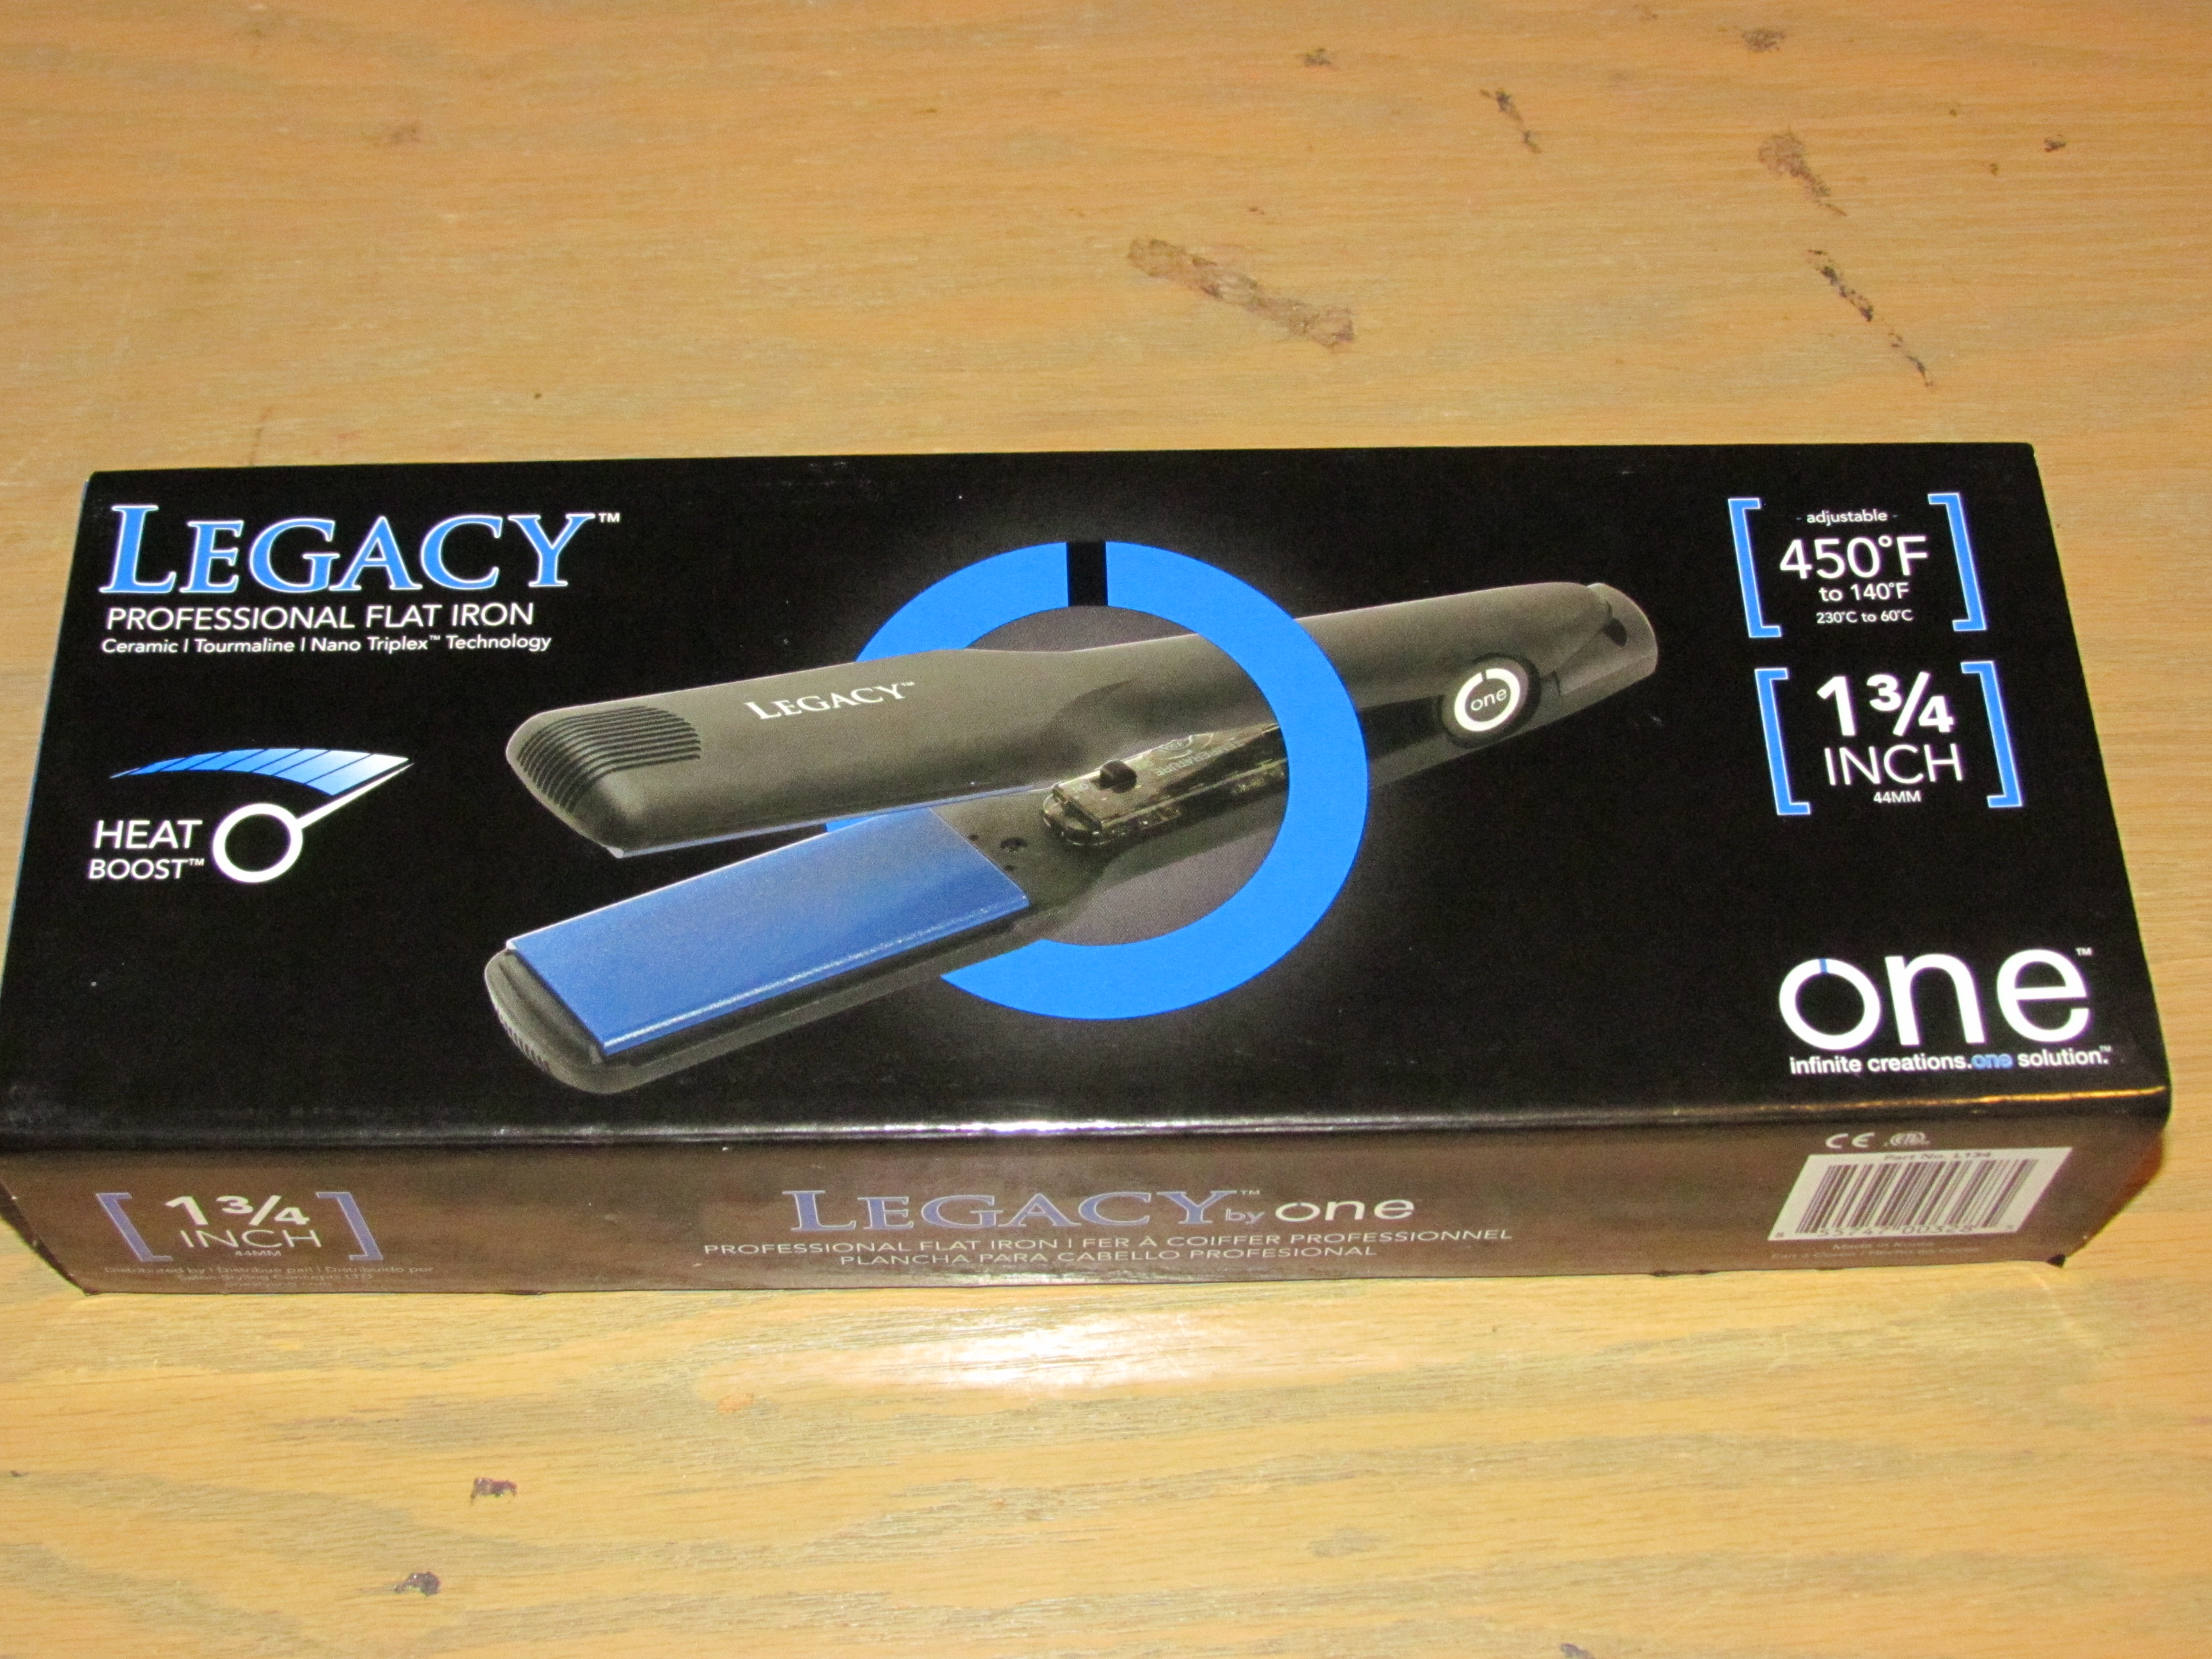 Ceramic Tourmaline Infrared Flat Iron Review And Giveaway Ends 11 23